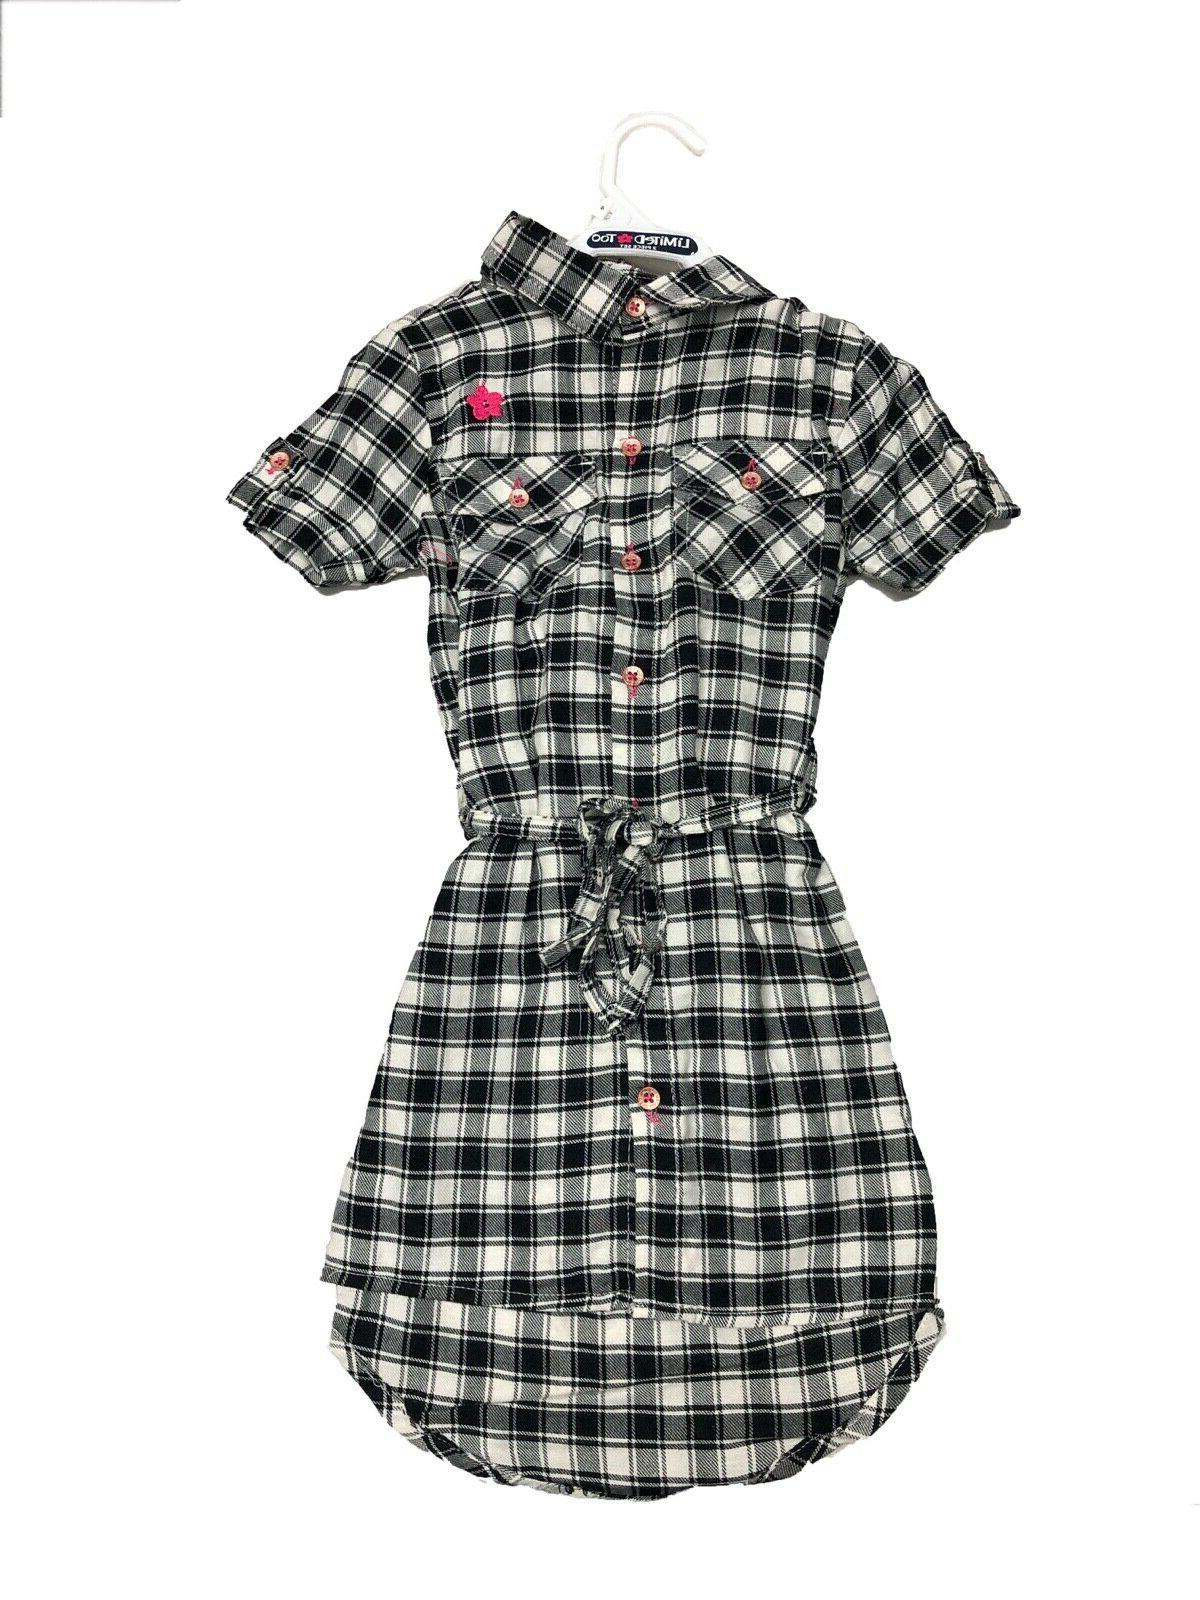 NWT Limited Black White Plaid Dress with Pink Knit Sweater